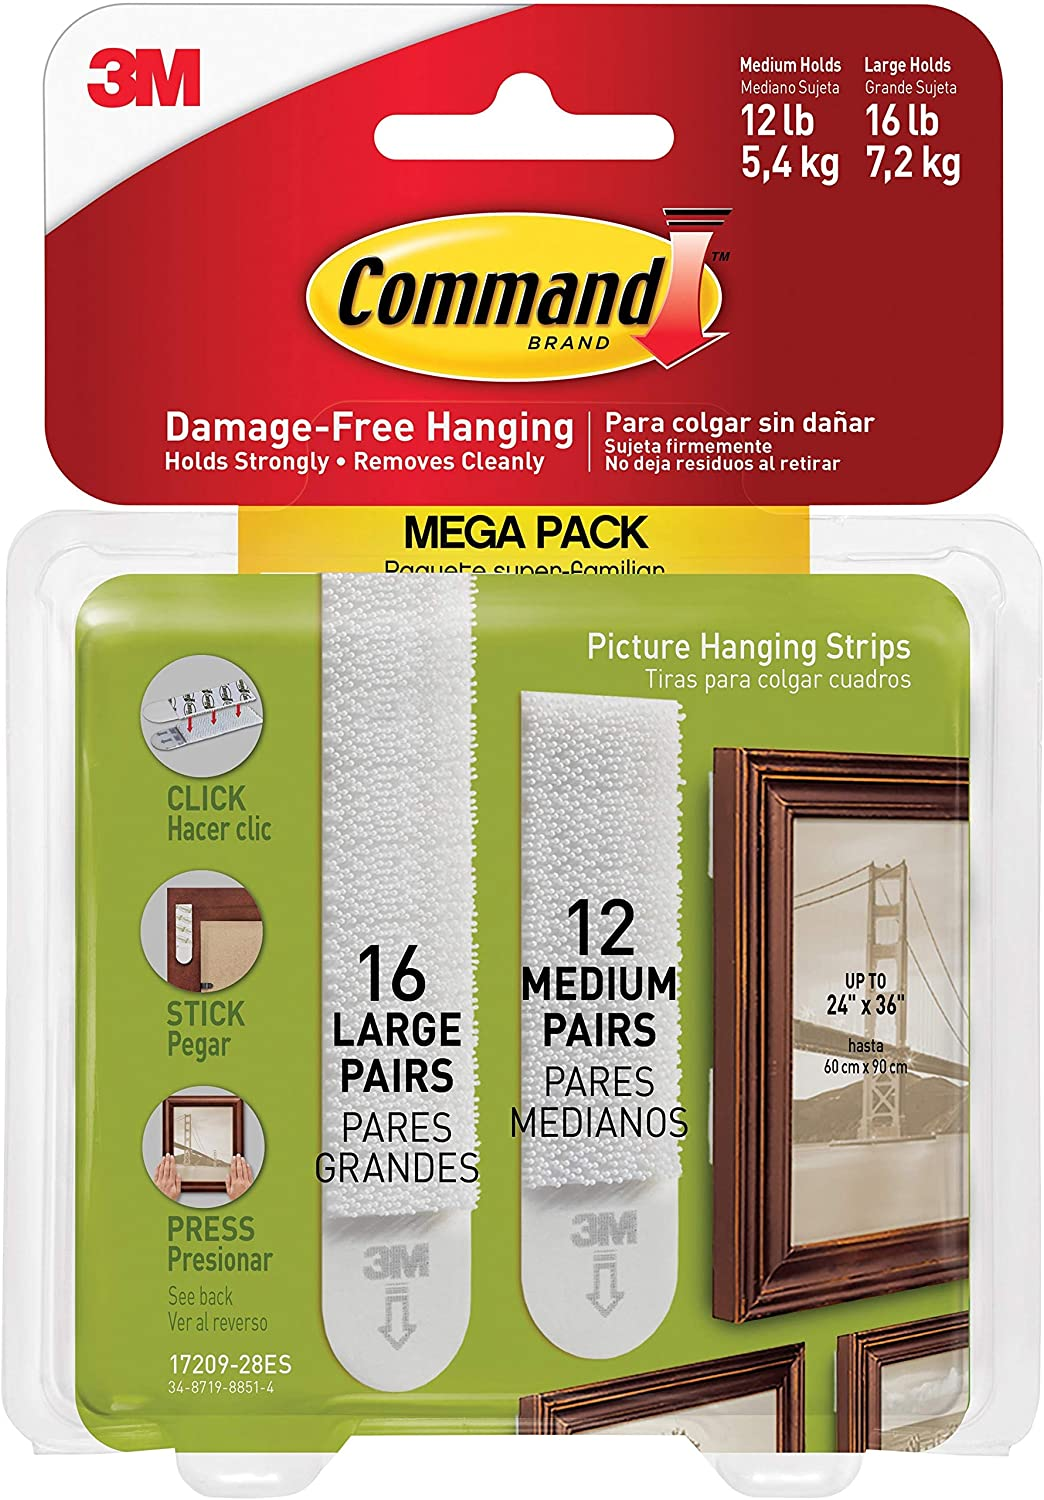 List price 3M Command Picture Hanging free shipping Mega Pack Strips